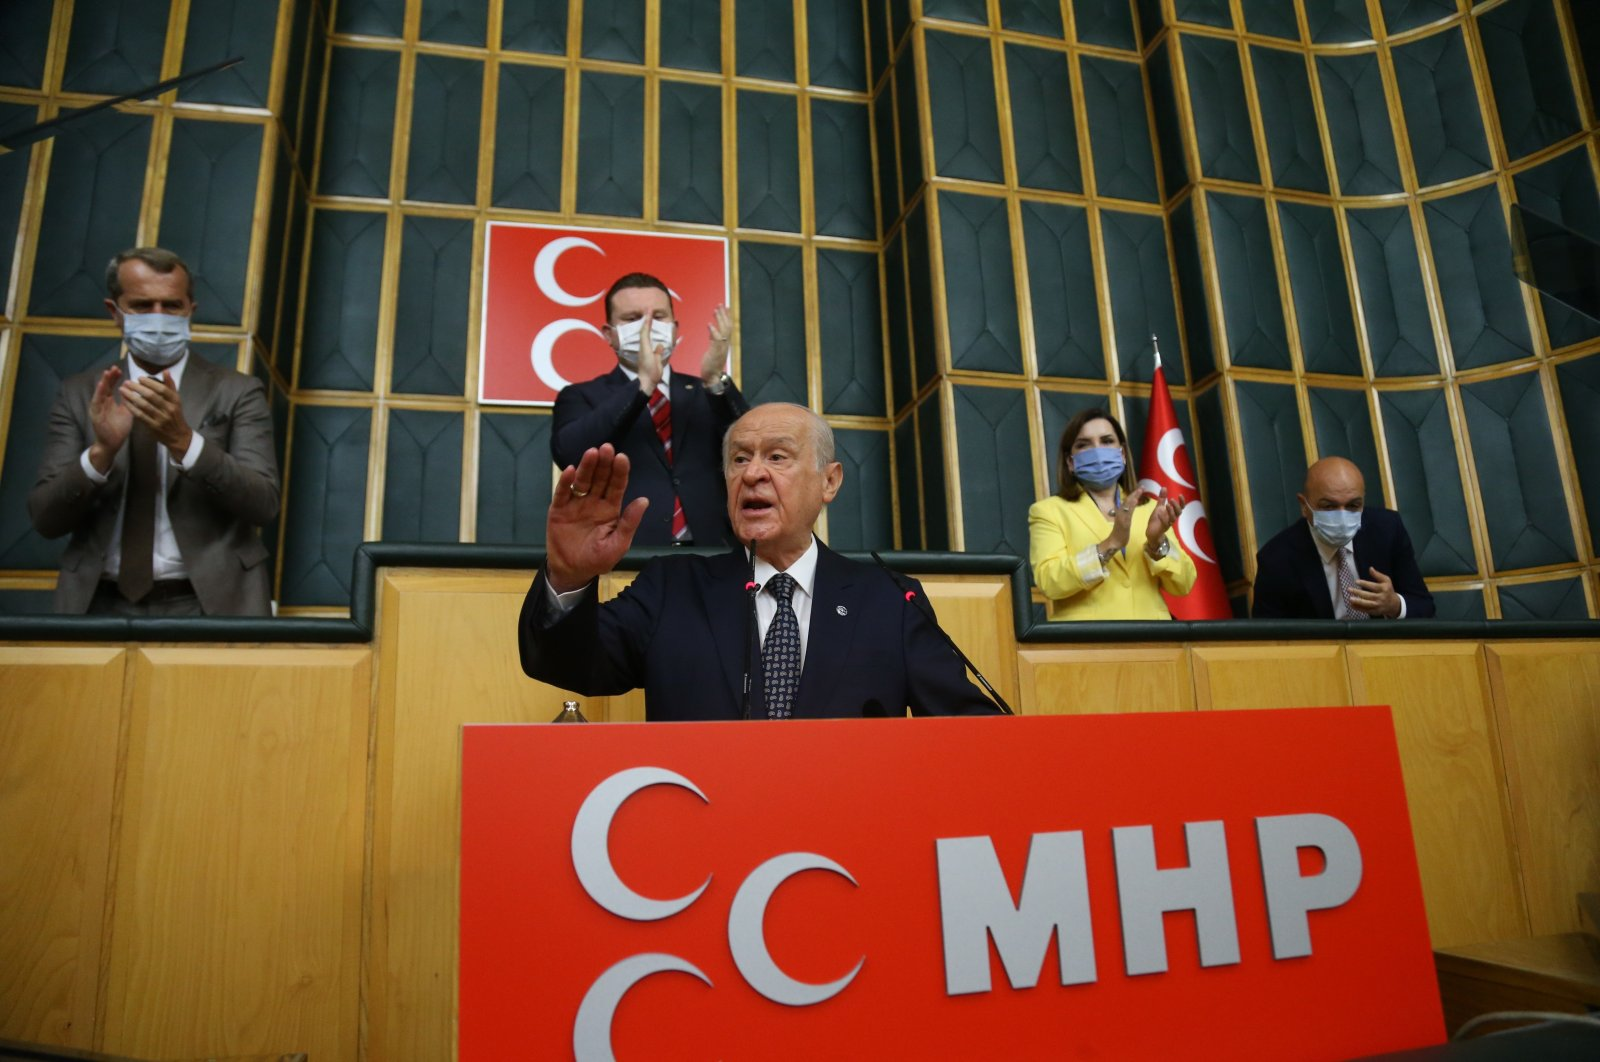 Nationalist Movement Party (MHP) Chairperson Devlet Bahçeli gestures during his party's parliamentary group meeting in Ankara, Turkey, Oct. 5, 2021. (IHA Photo)